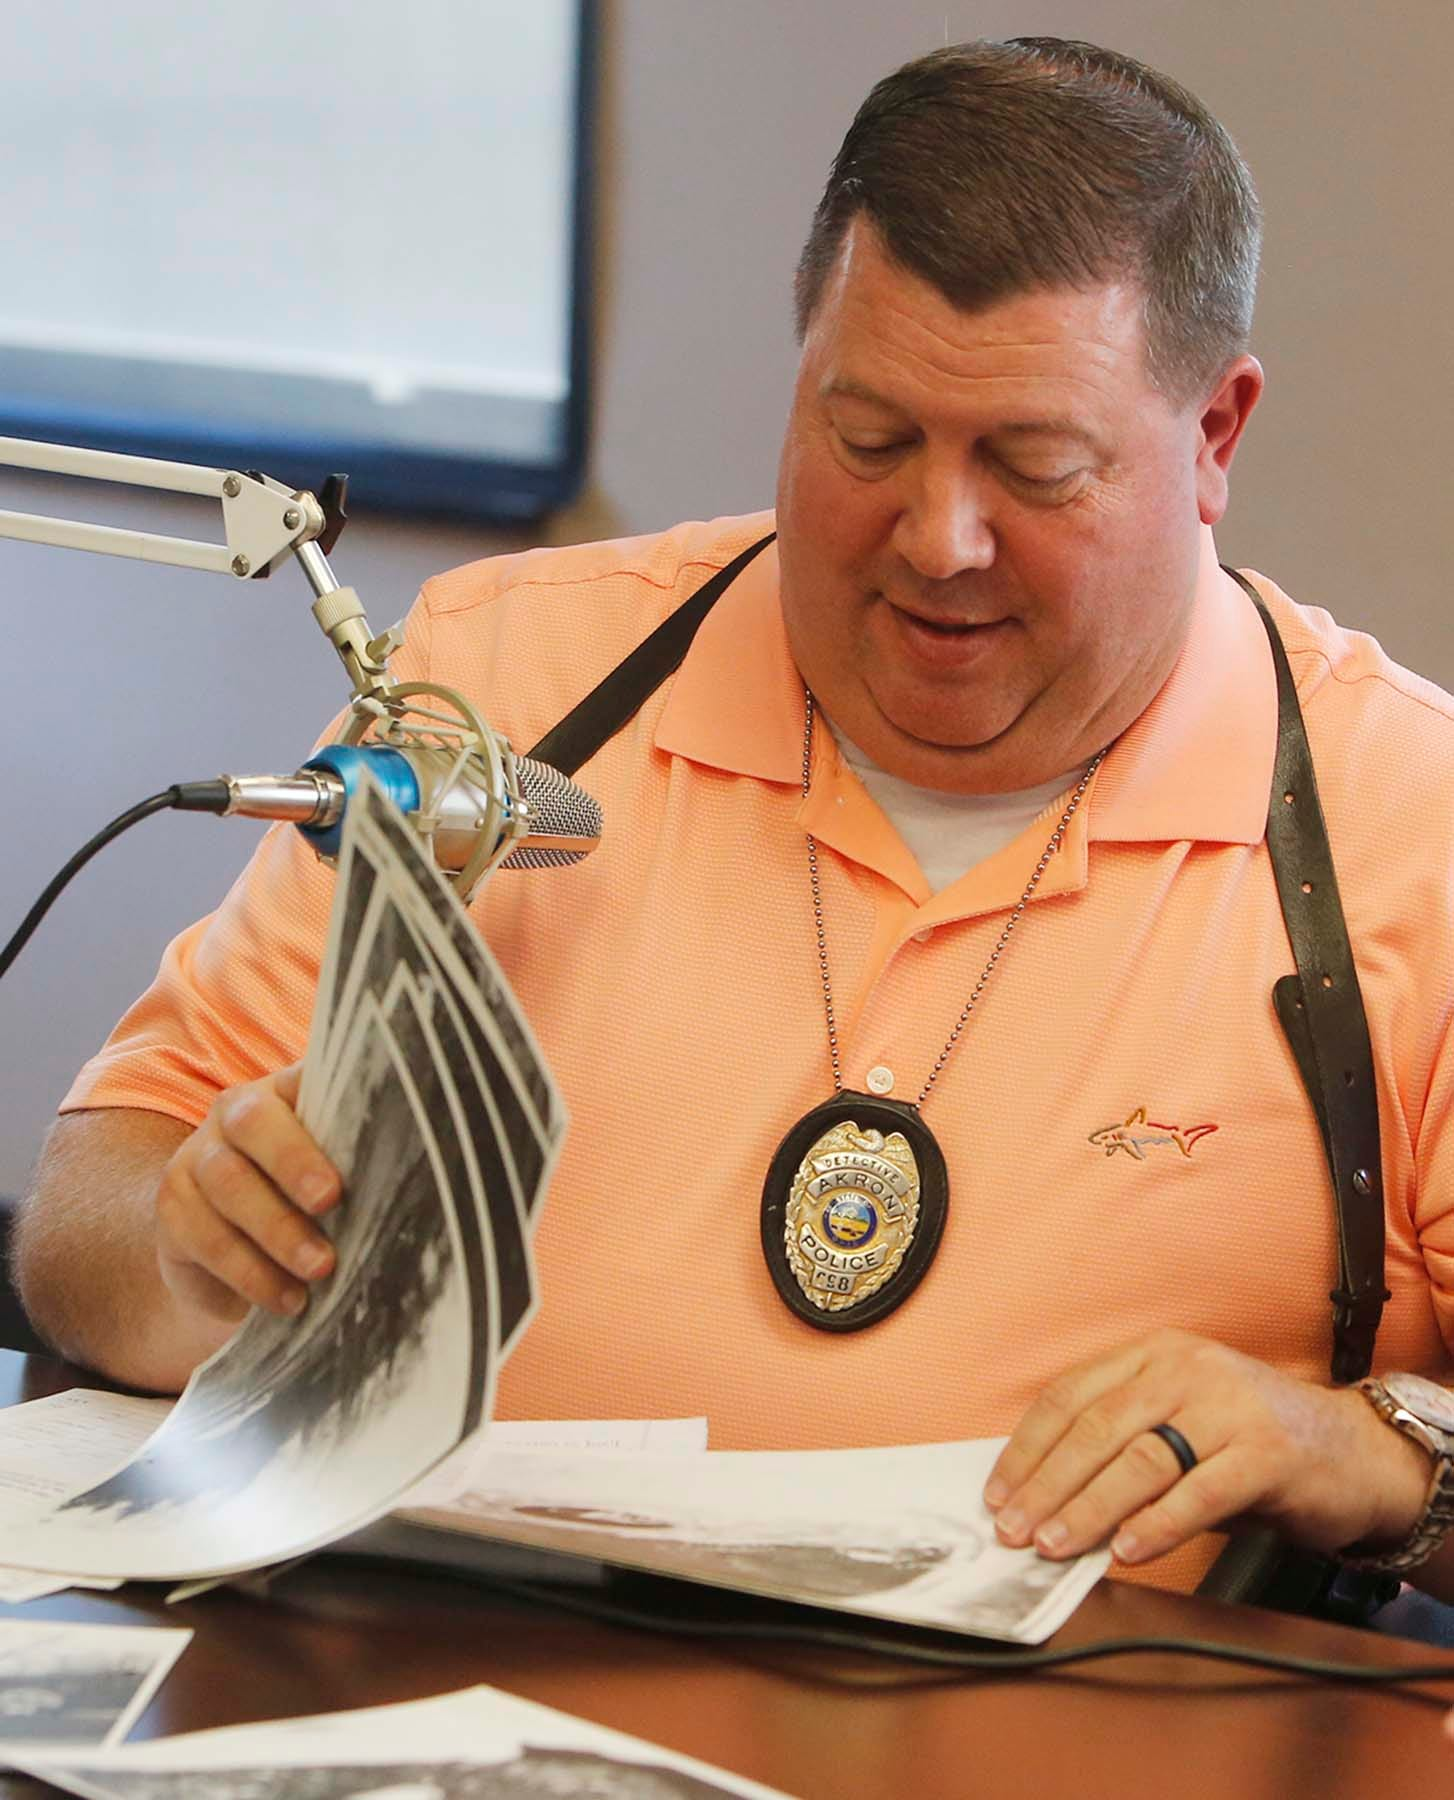 Akron Police Department Detective James Pasheilich goes through photographs in the case files of murder victim Leslie Barker. Barker was killed in 1978, and her death remains unsolved.